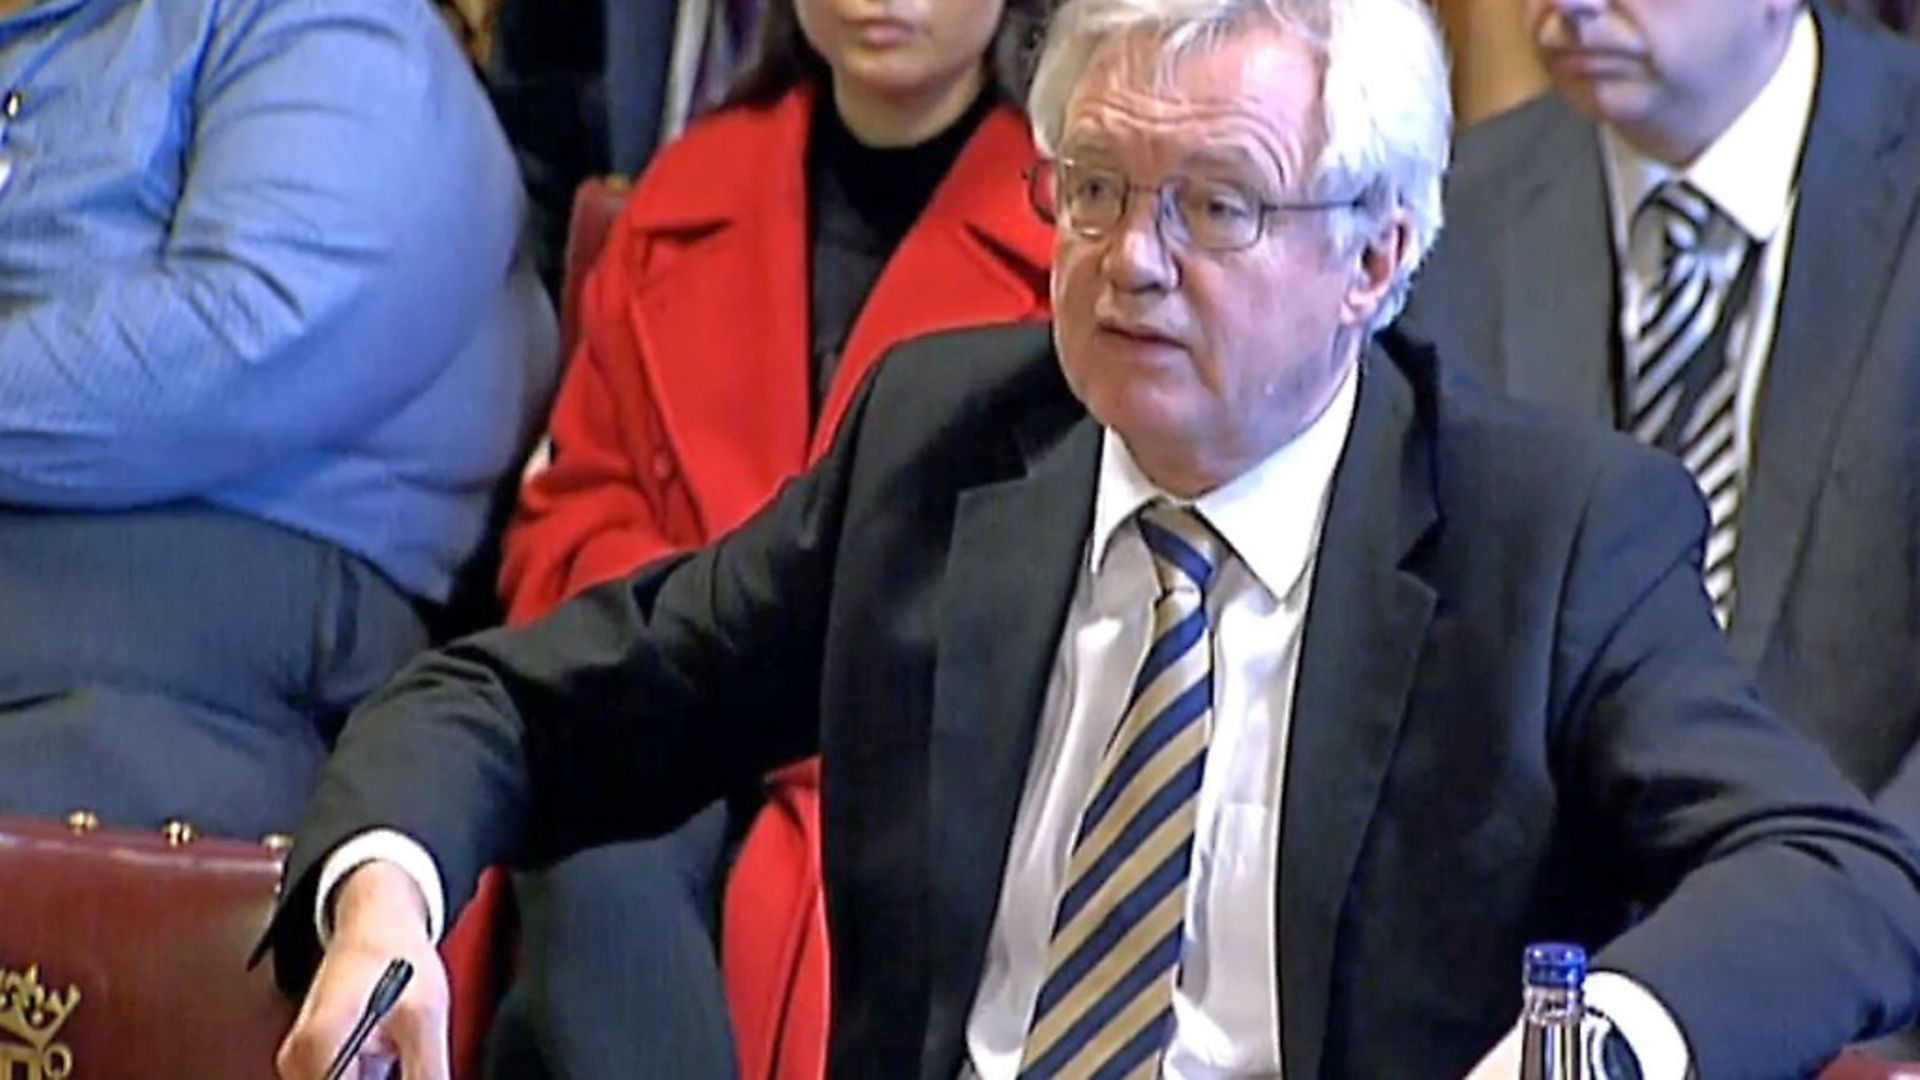 Brexit Secretary David Davis gives evidence to the the European Union Select Committee in the House of Lords. Picture: PA Wire/PA Images - Credit: PA Wire/PA Images